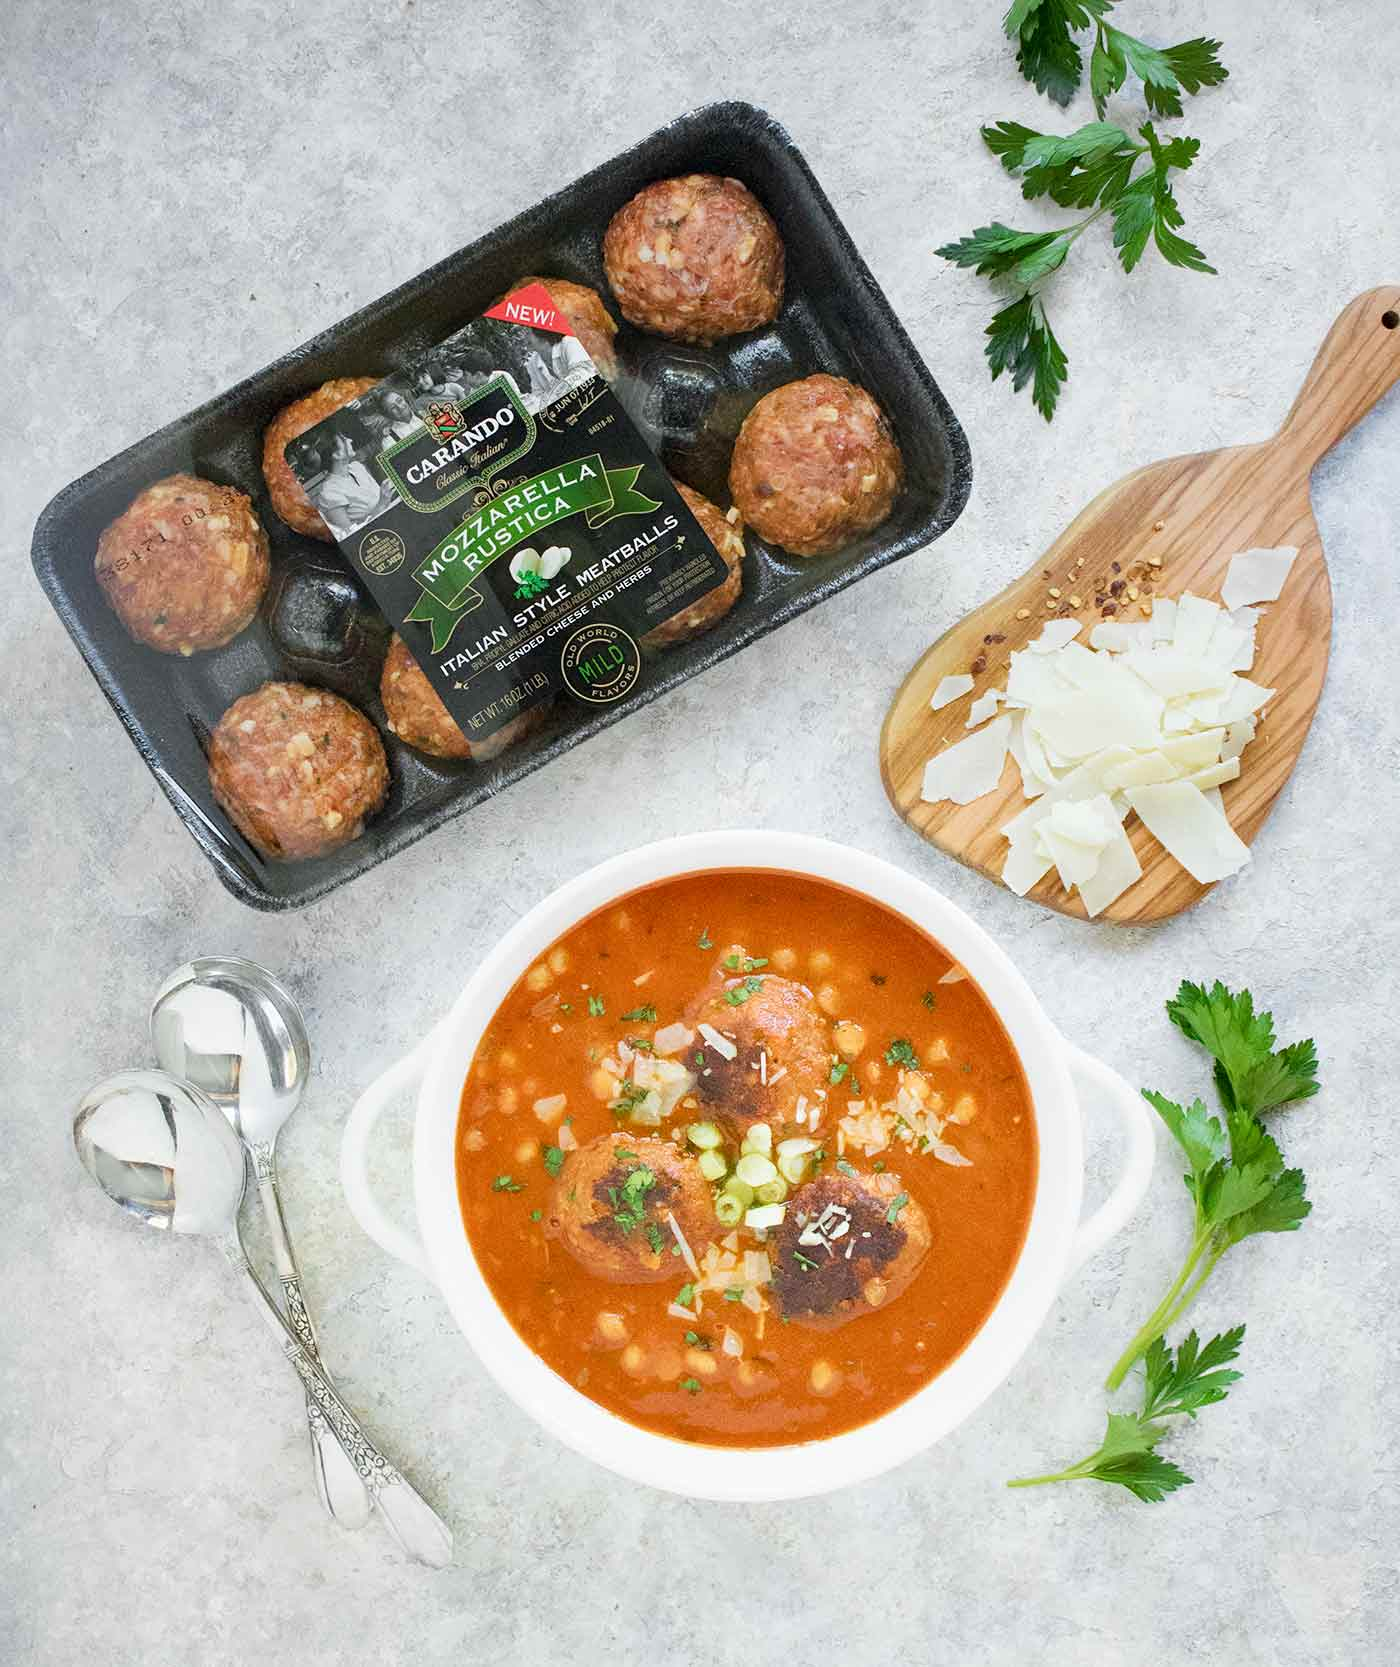 Package of Carando meatballs with the finished Instant Pot Italian Meatball Soup, with a garnish of parm